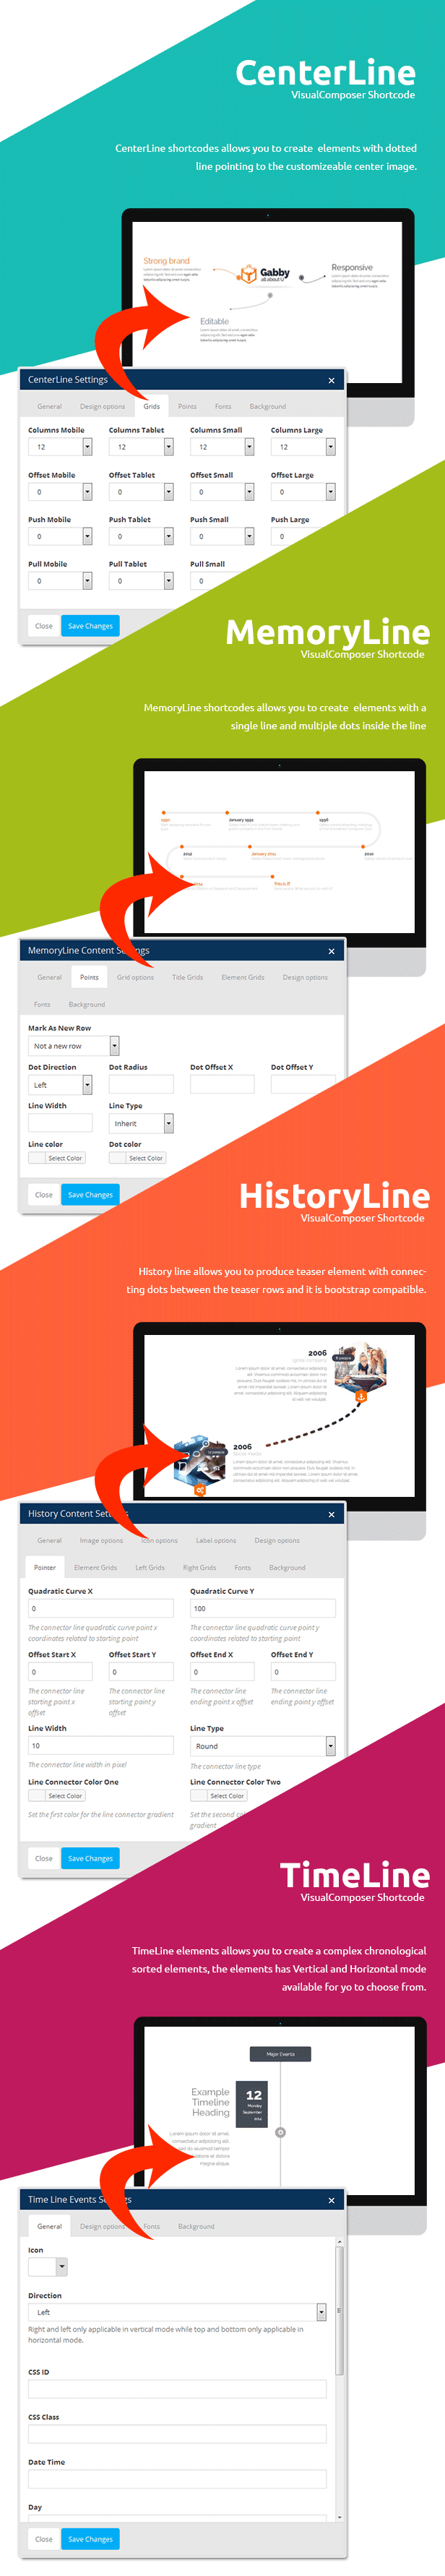 VisualLine Visual Composer Timeline Addons Pack